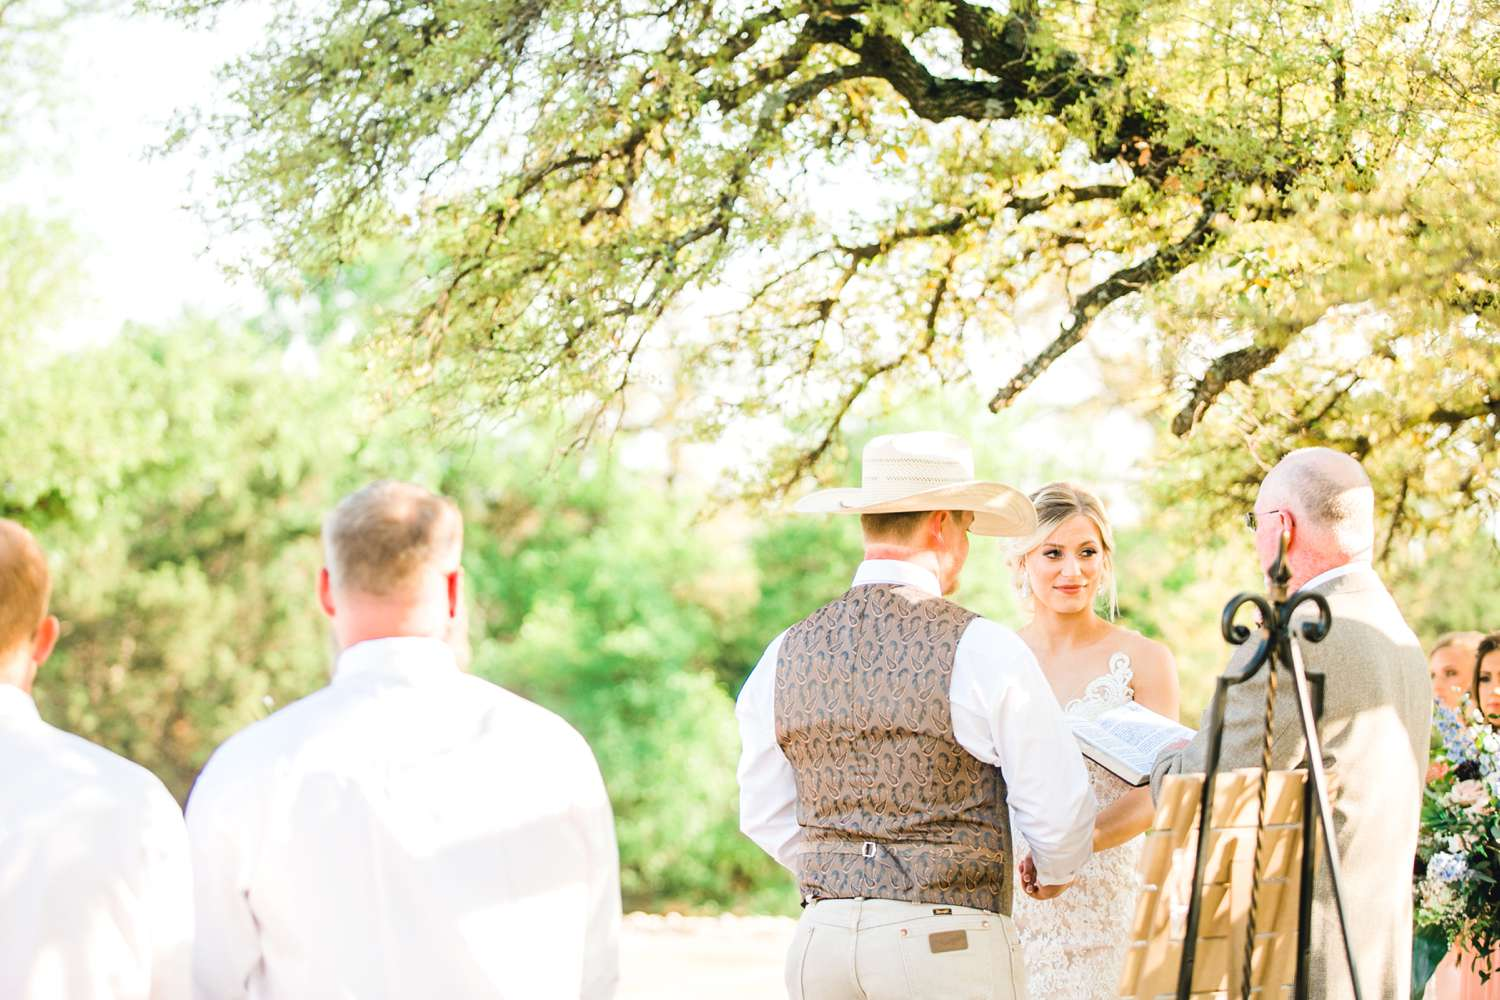 SARAH+TREVOR+BADGETT+SPARROW+CREEK+GRAHAM+TEXAS+ALLEEJ+WEDDINGS_0066.jpg